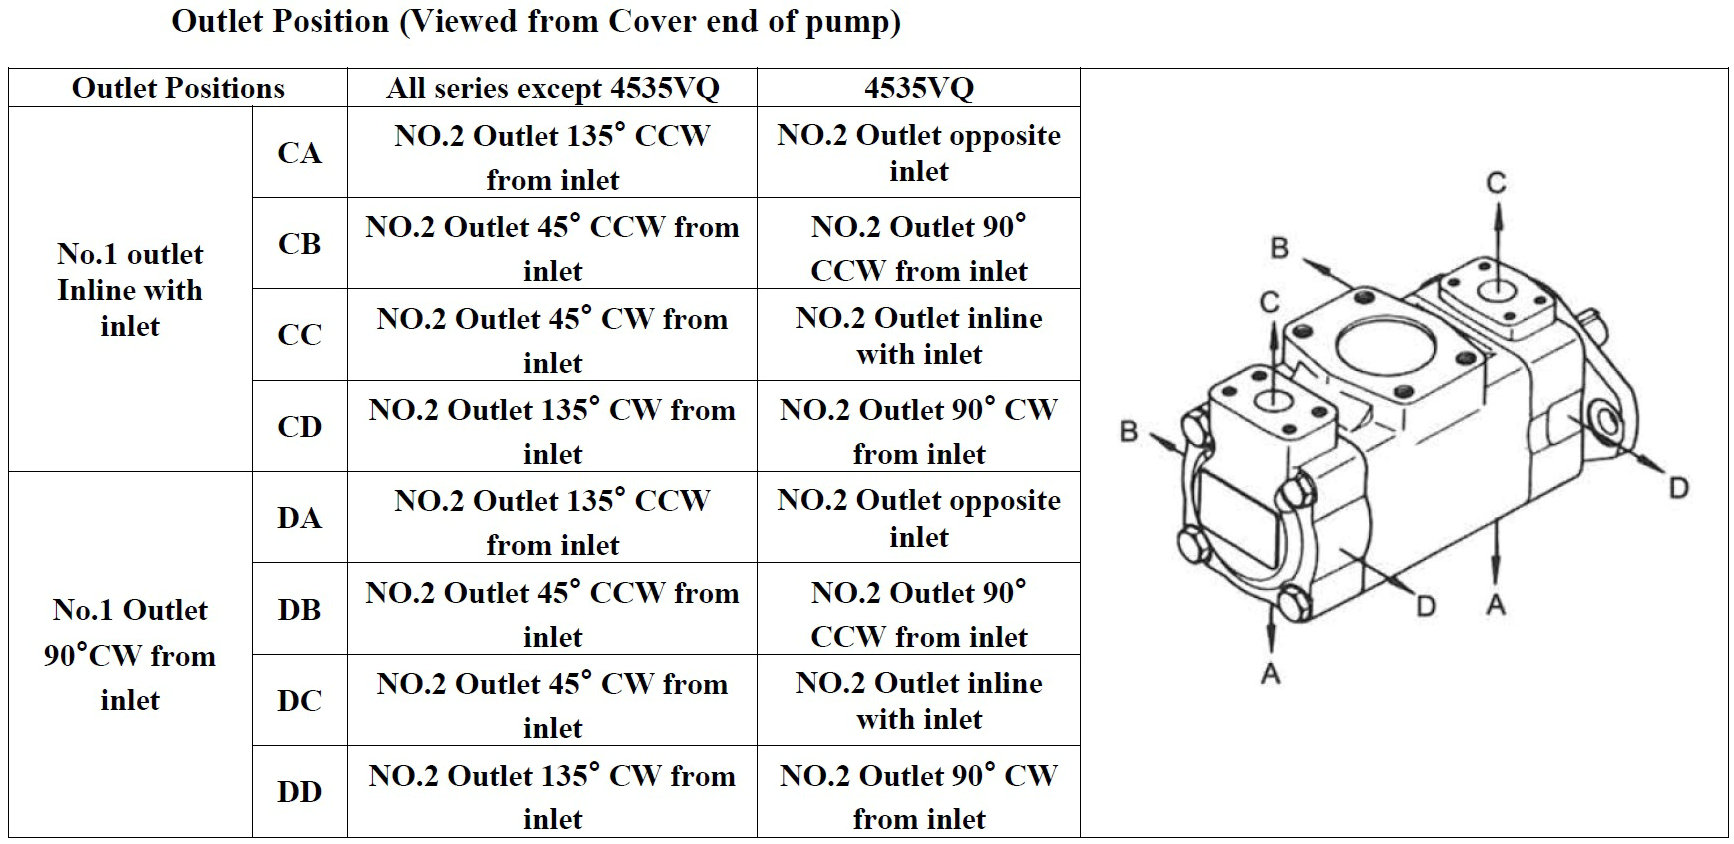 VQ Outlet position2